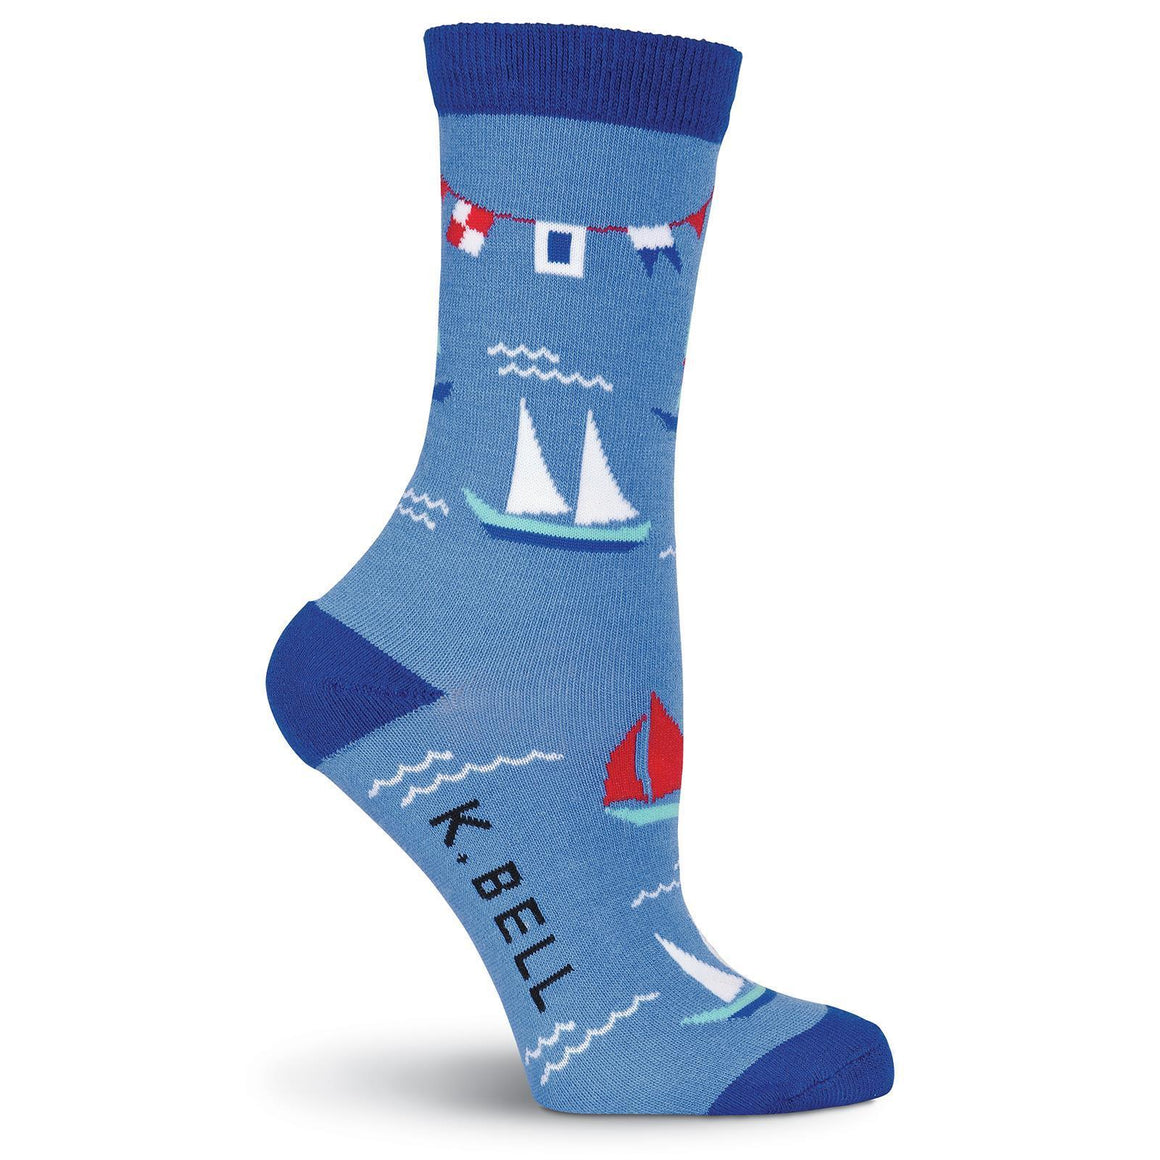 Nautical Flags Crew Socks - American Made - XEJRA